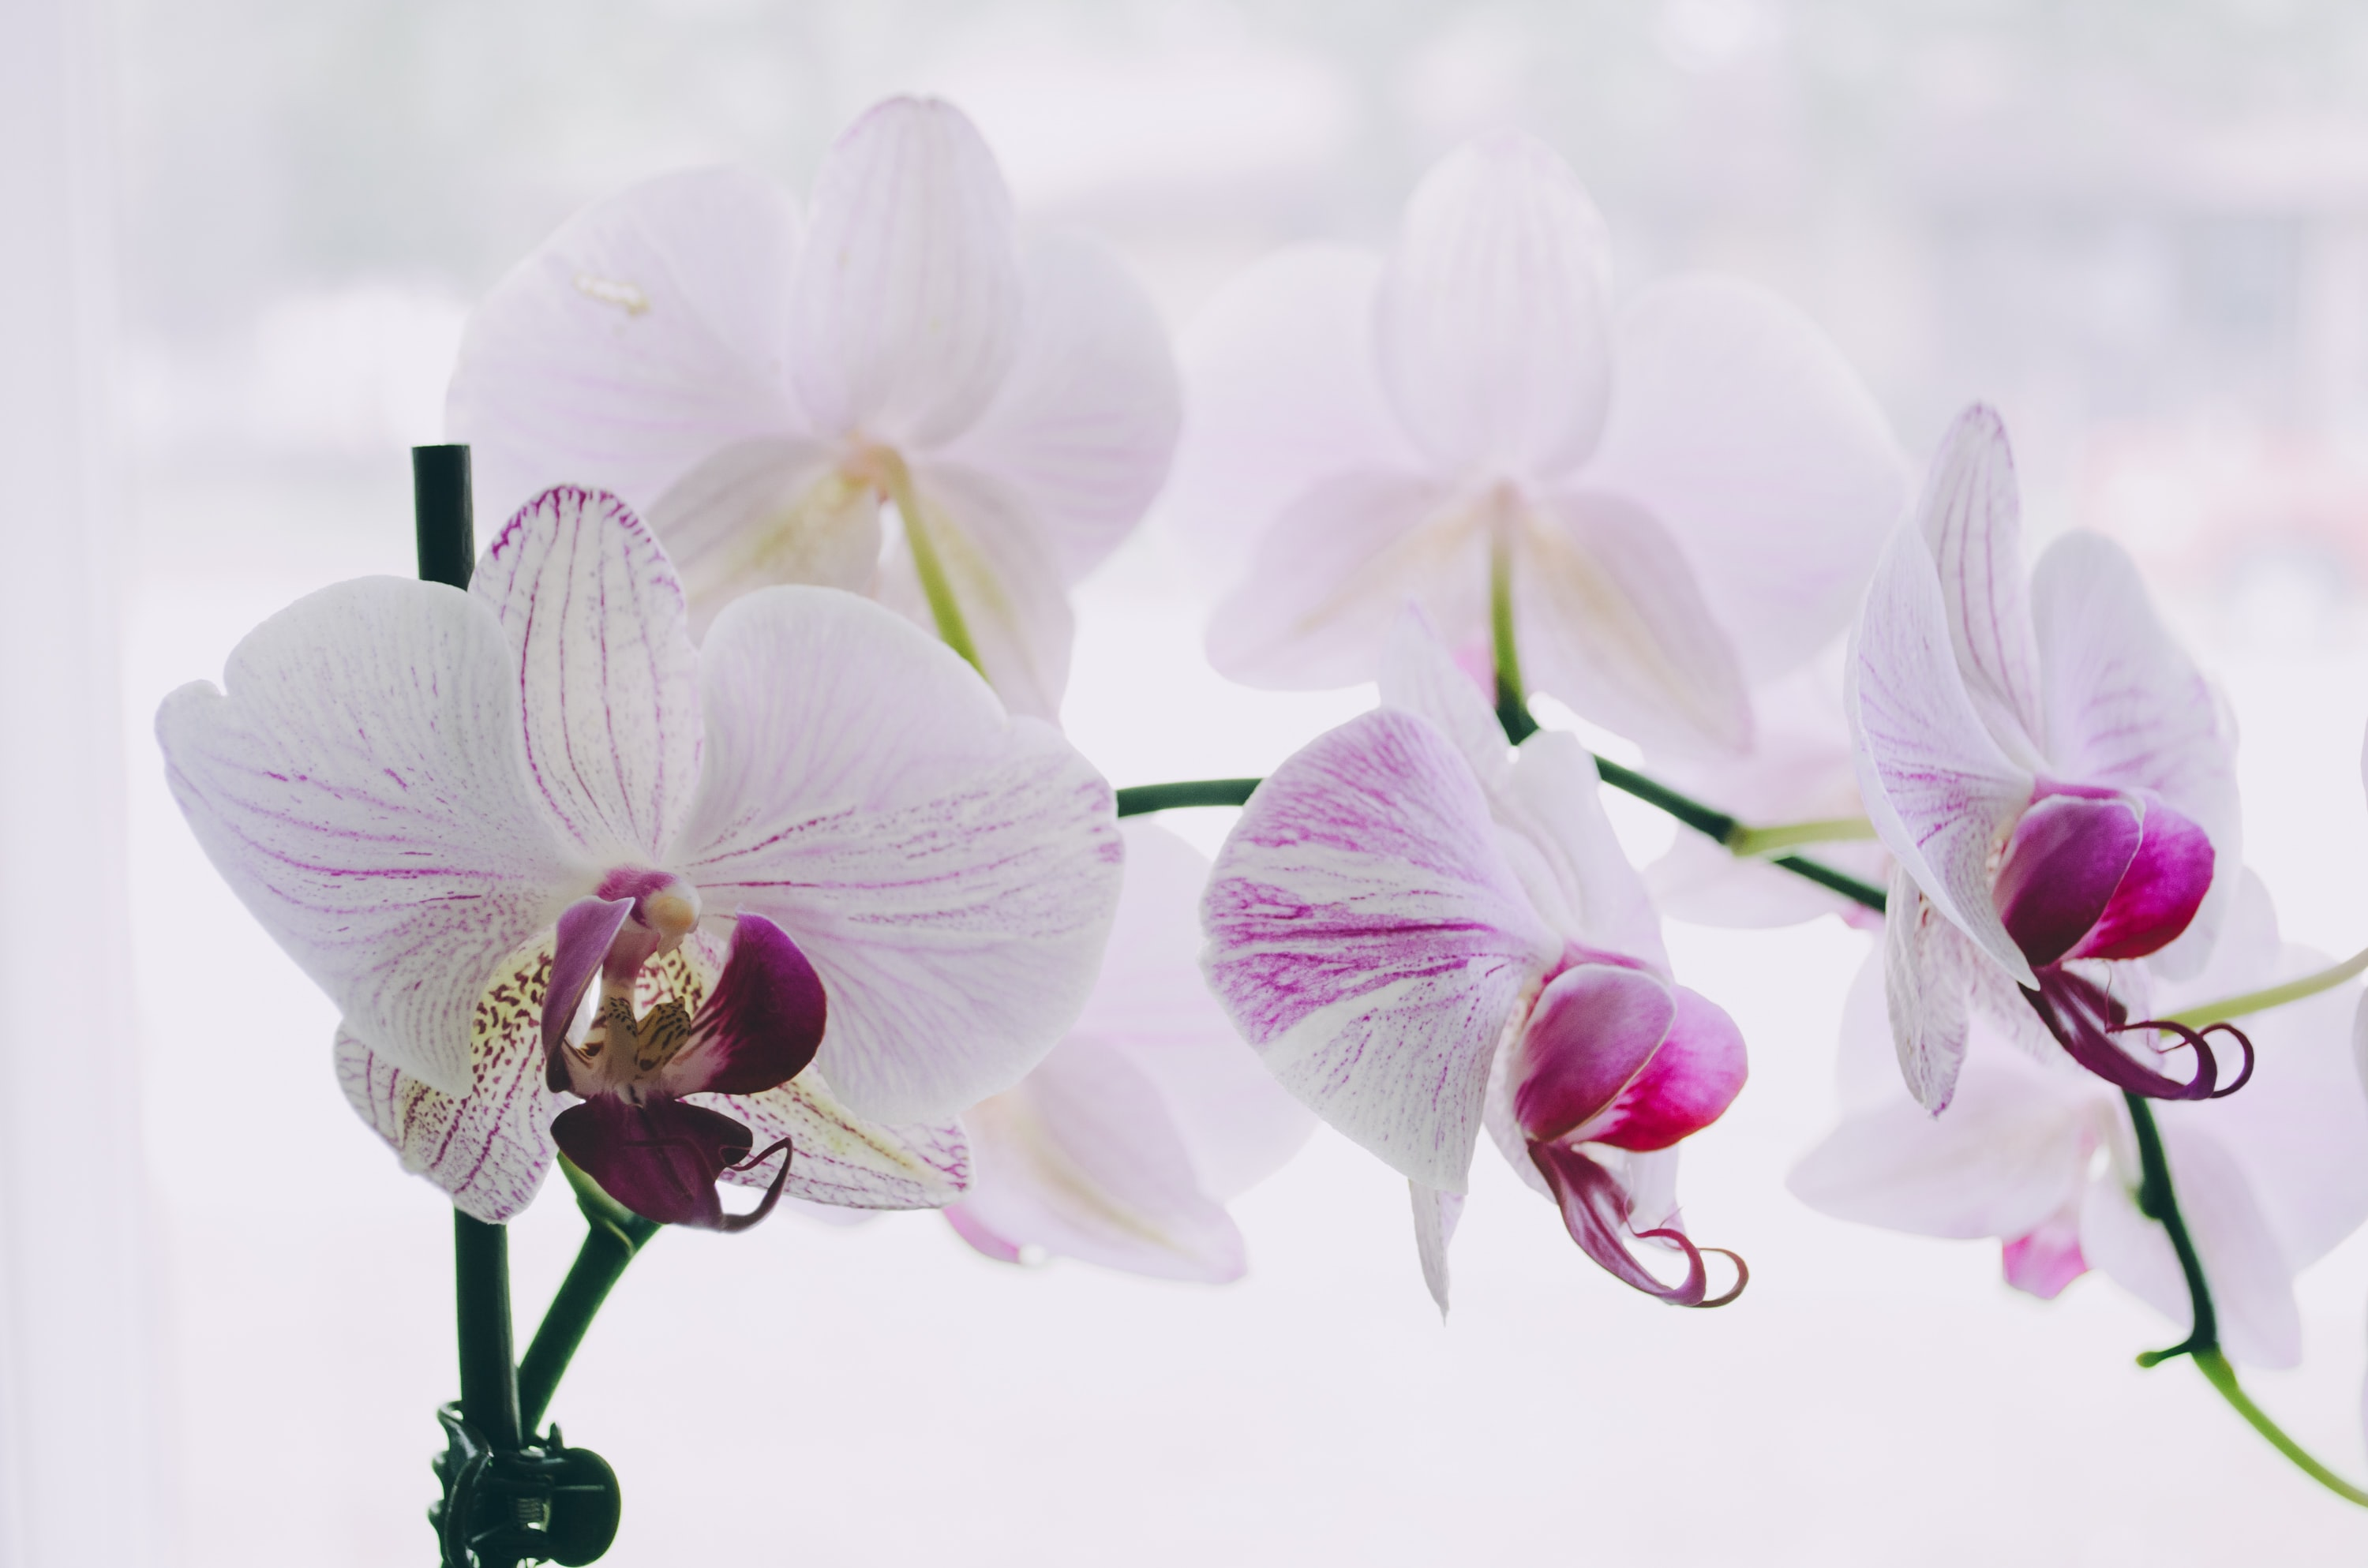 Purple flowers with white petals.